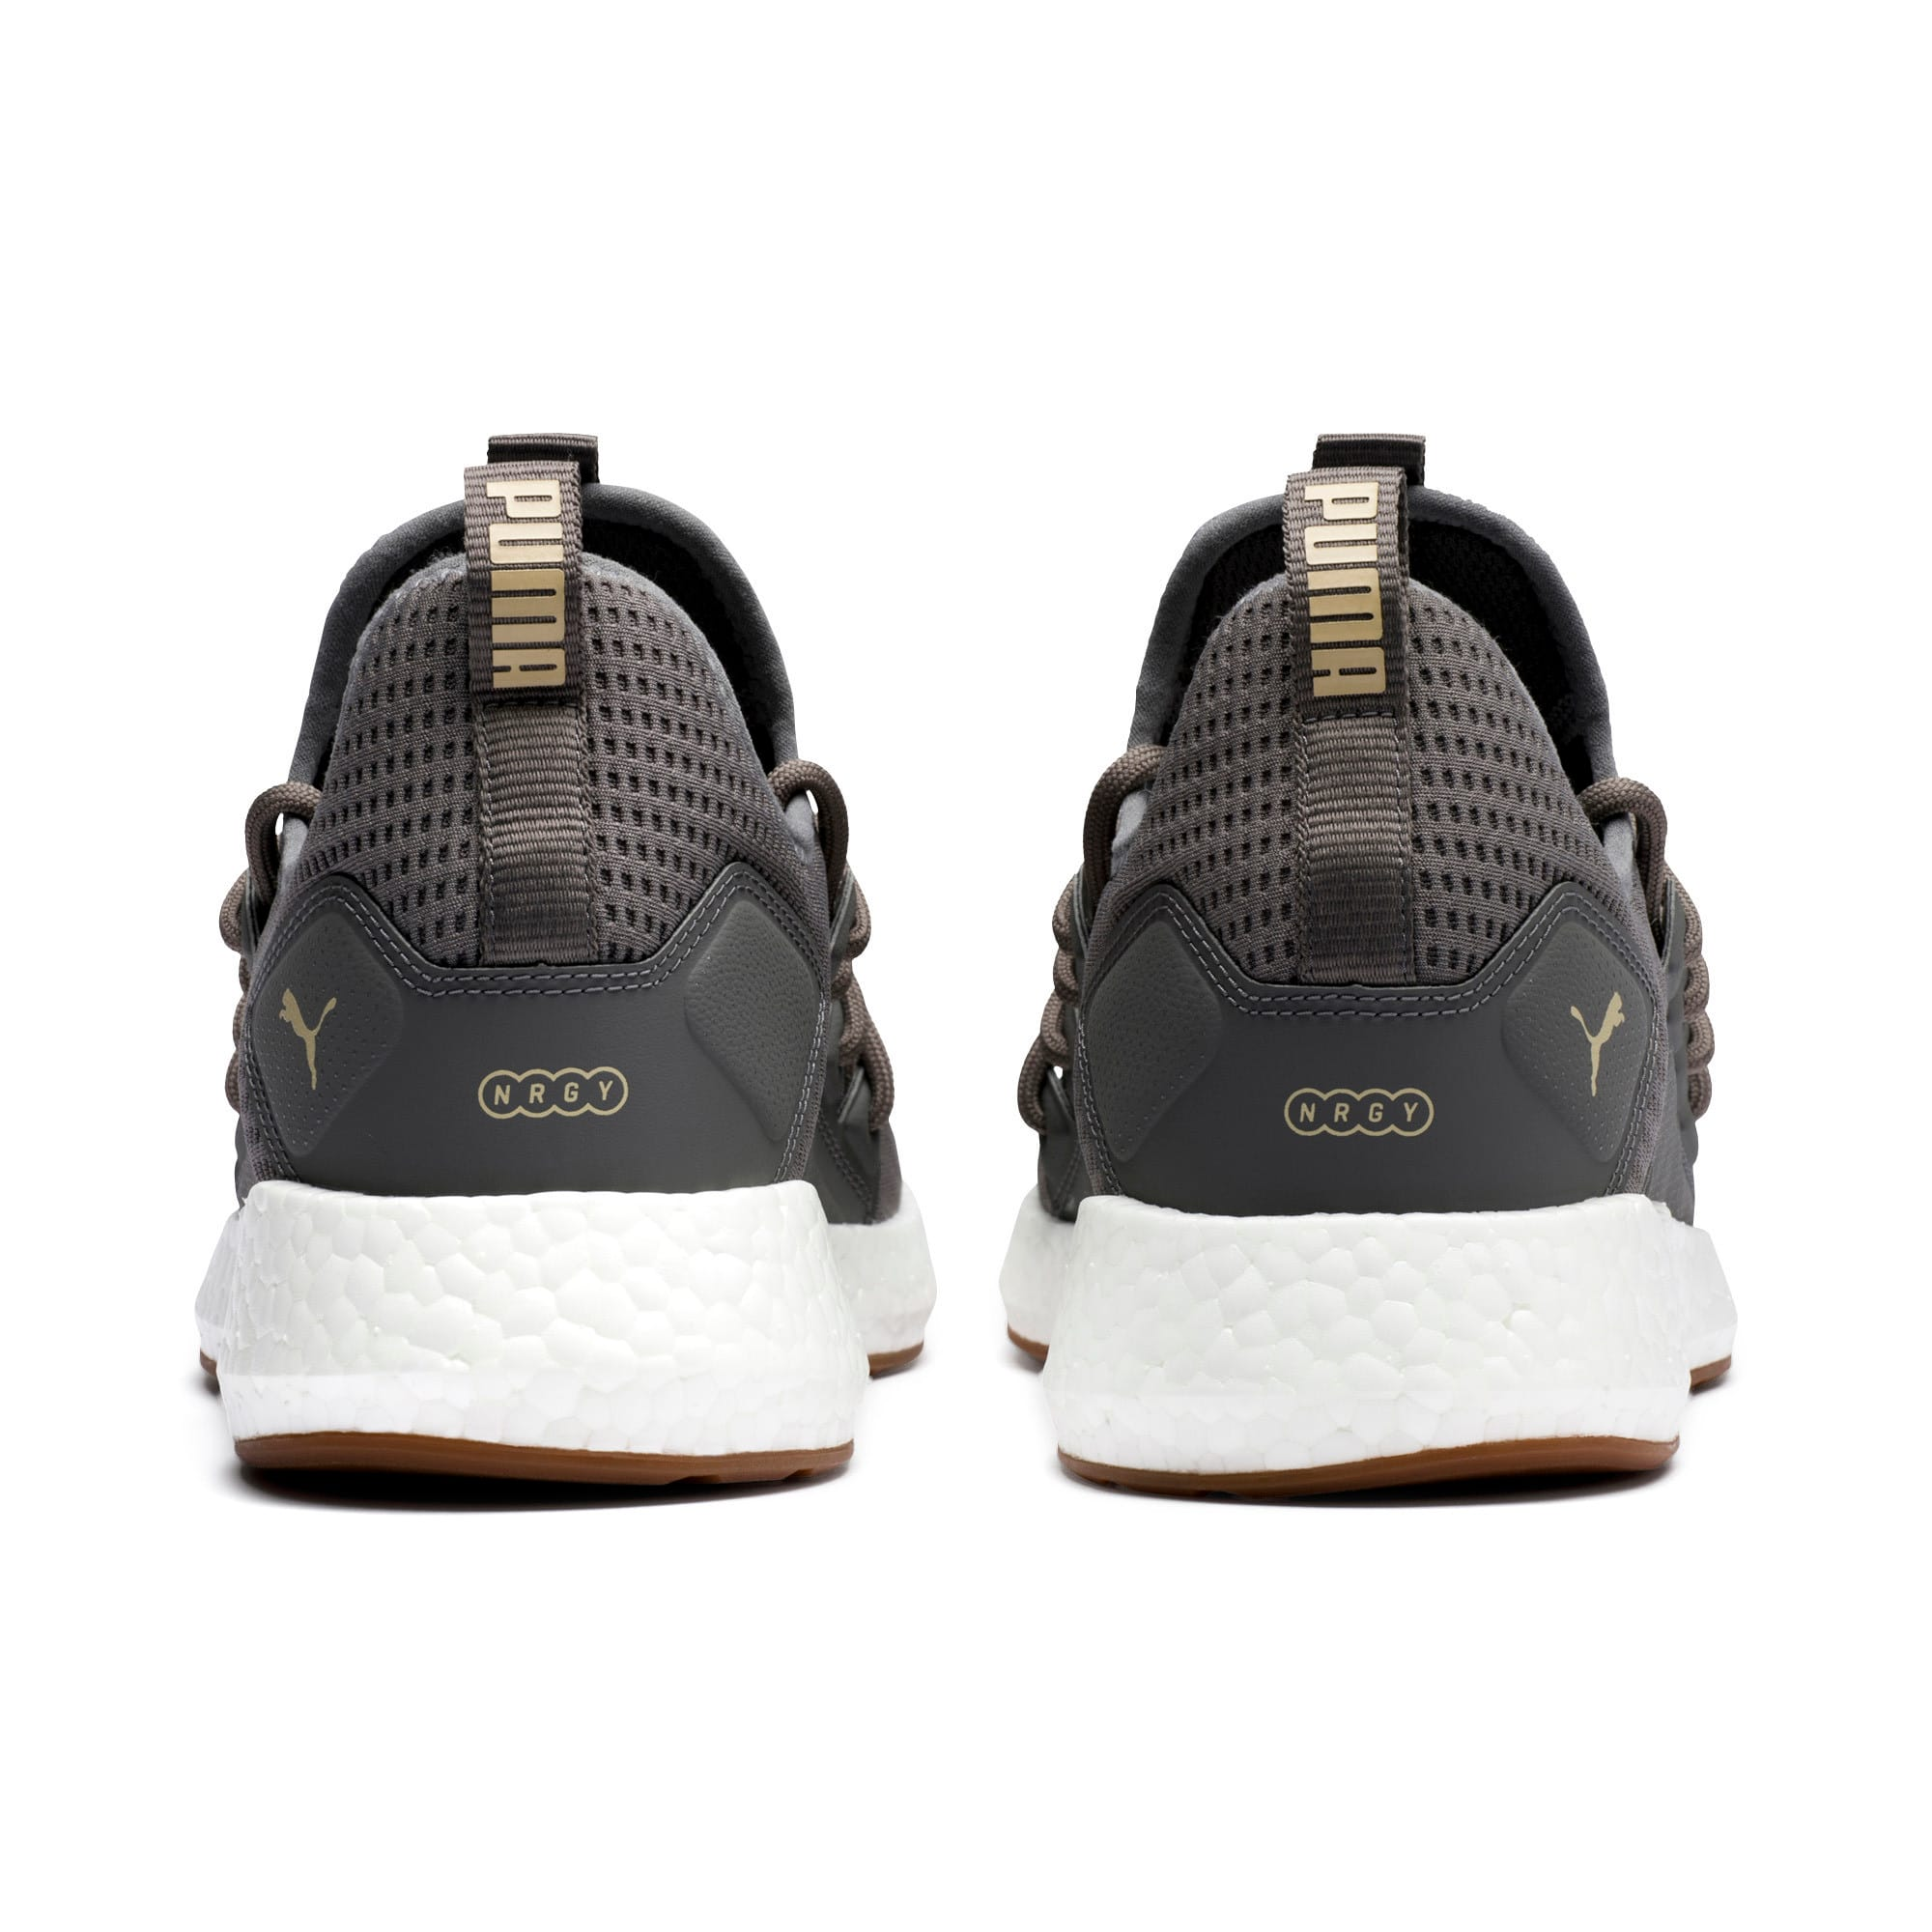 Thumbnail 3 of NRGY Neko Future Men's Trainers, Charcoal Gray-Taos Taupe, medium-IND